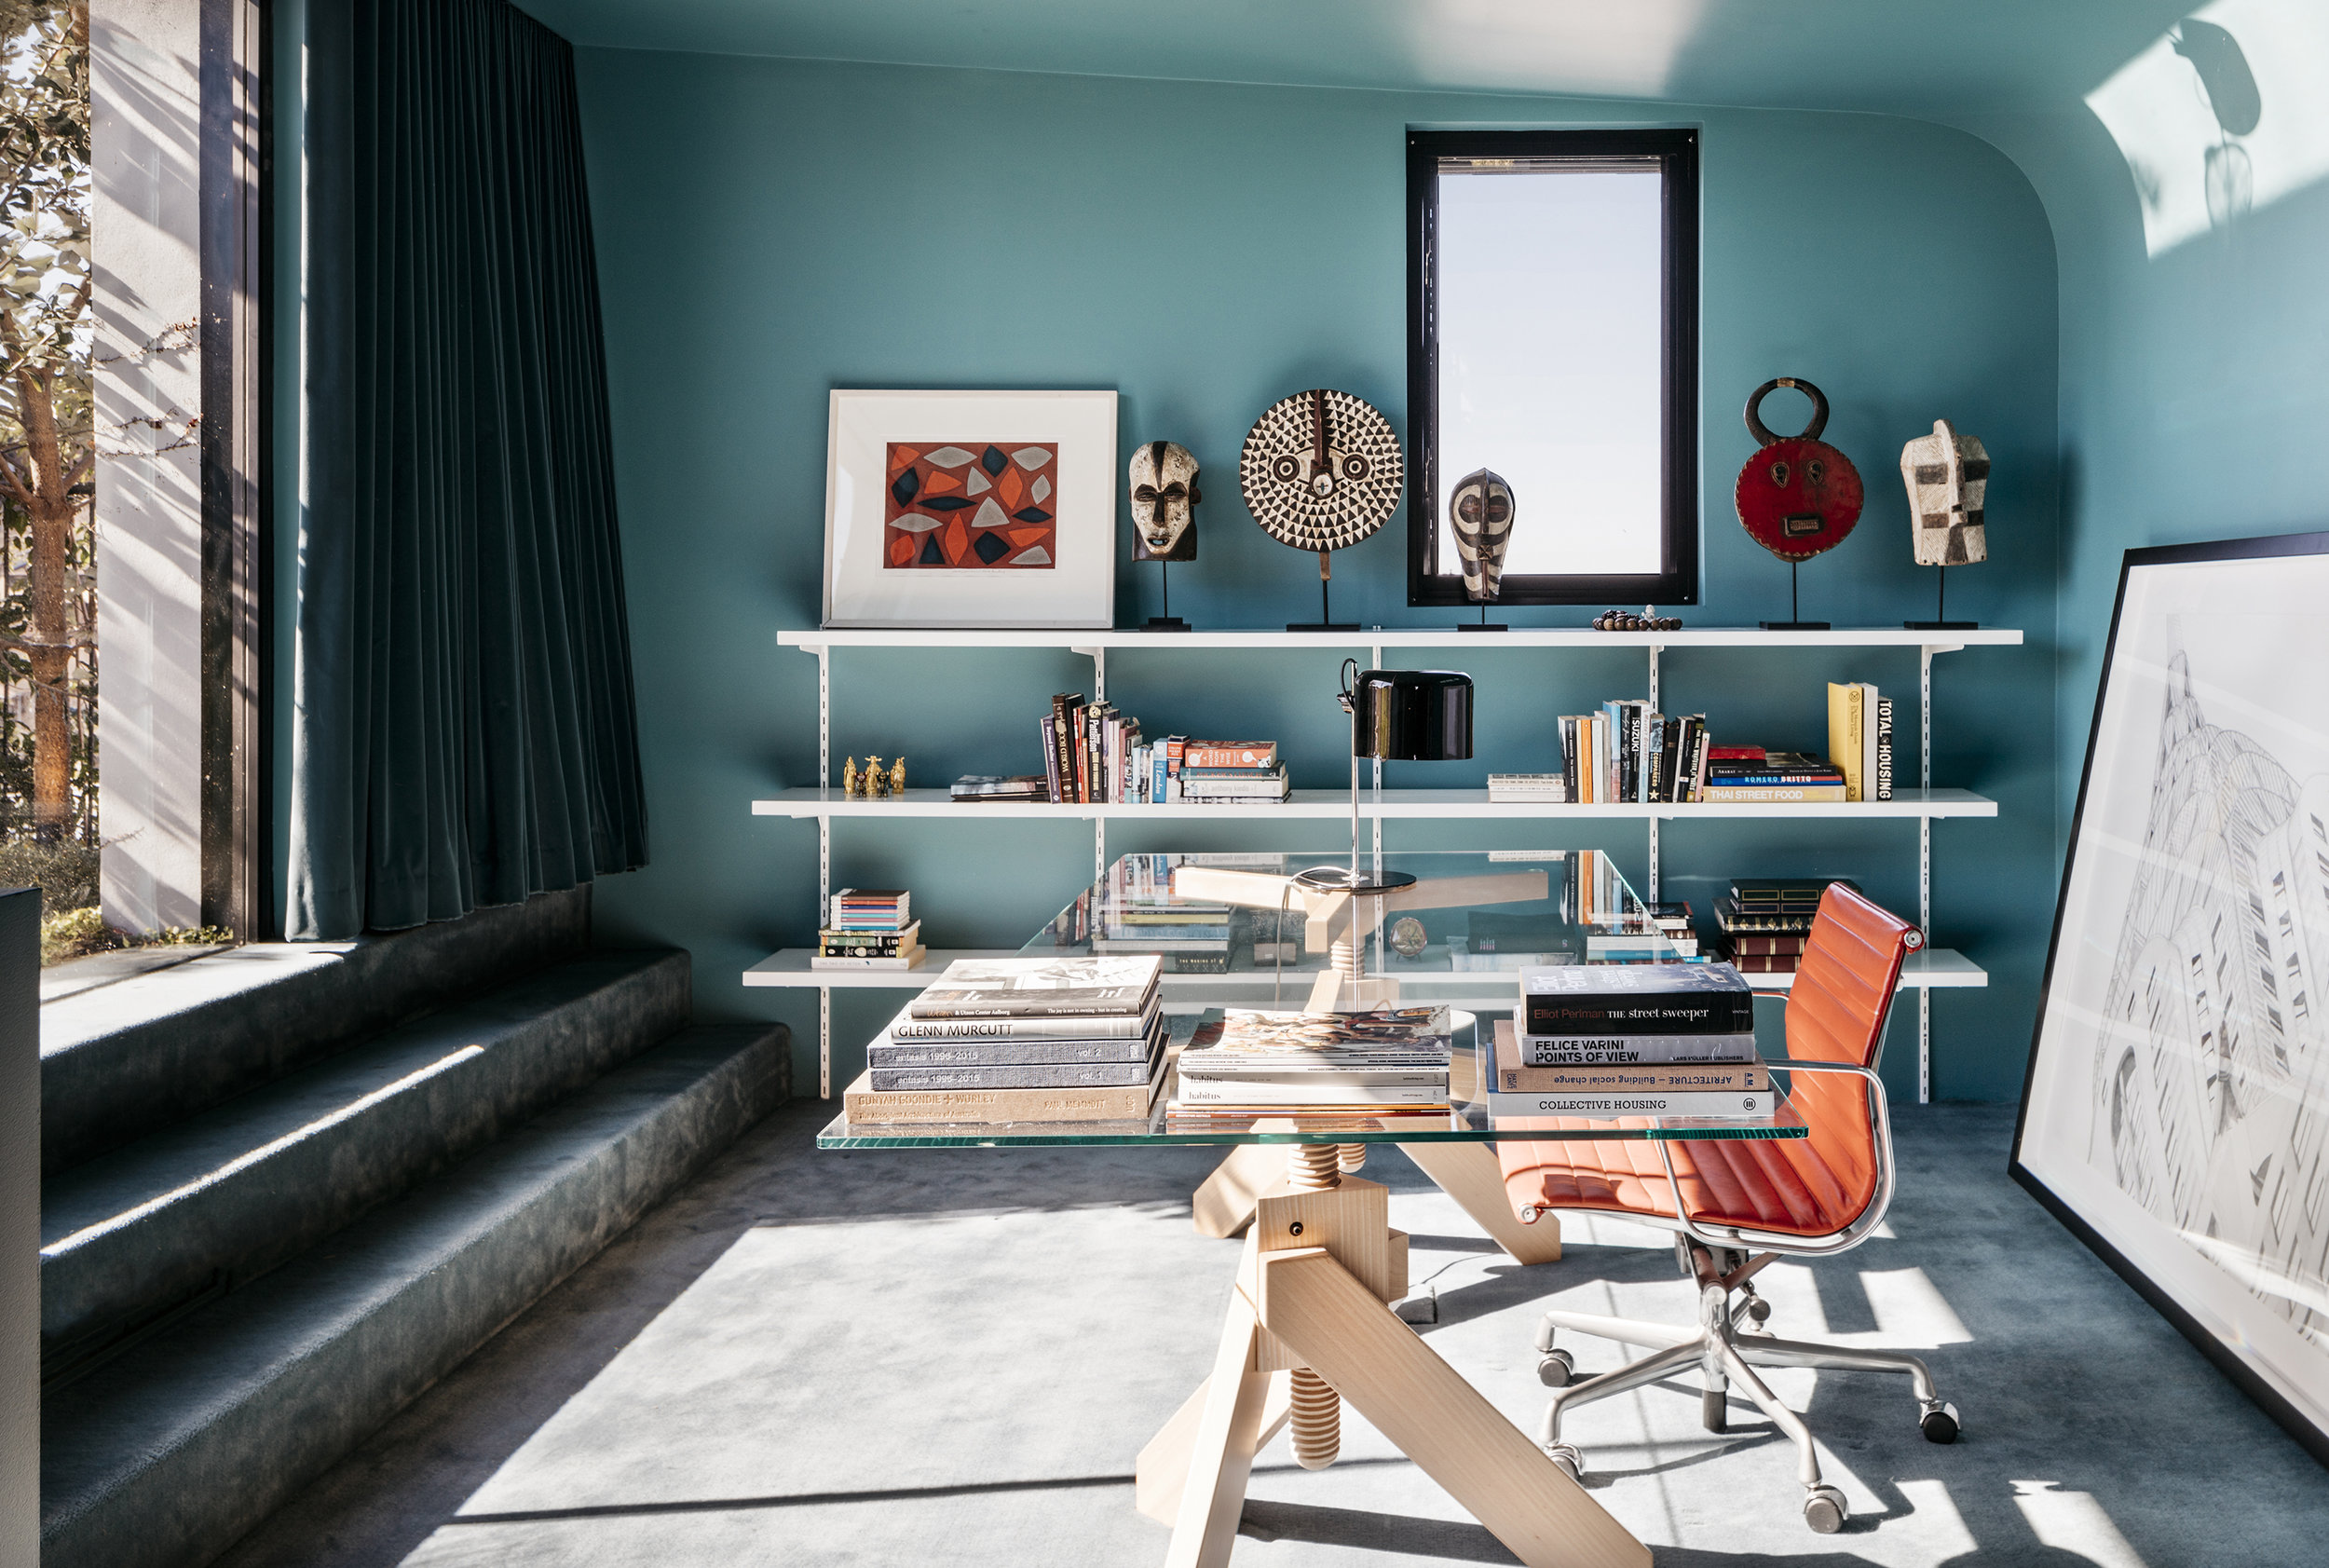 Dulux Colour Awards 2019 - Residential Interior. Cleveland Rooftop by SJB. Photo - Felix Forest.